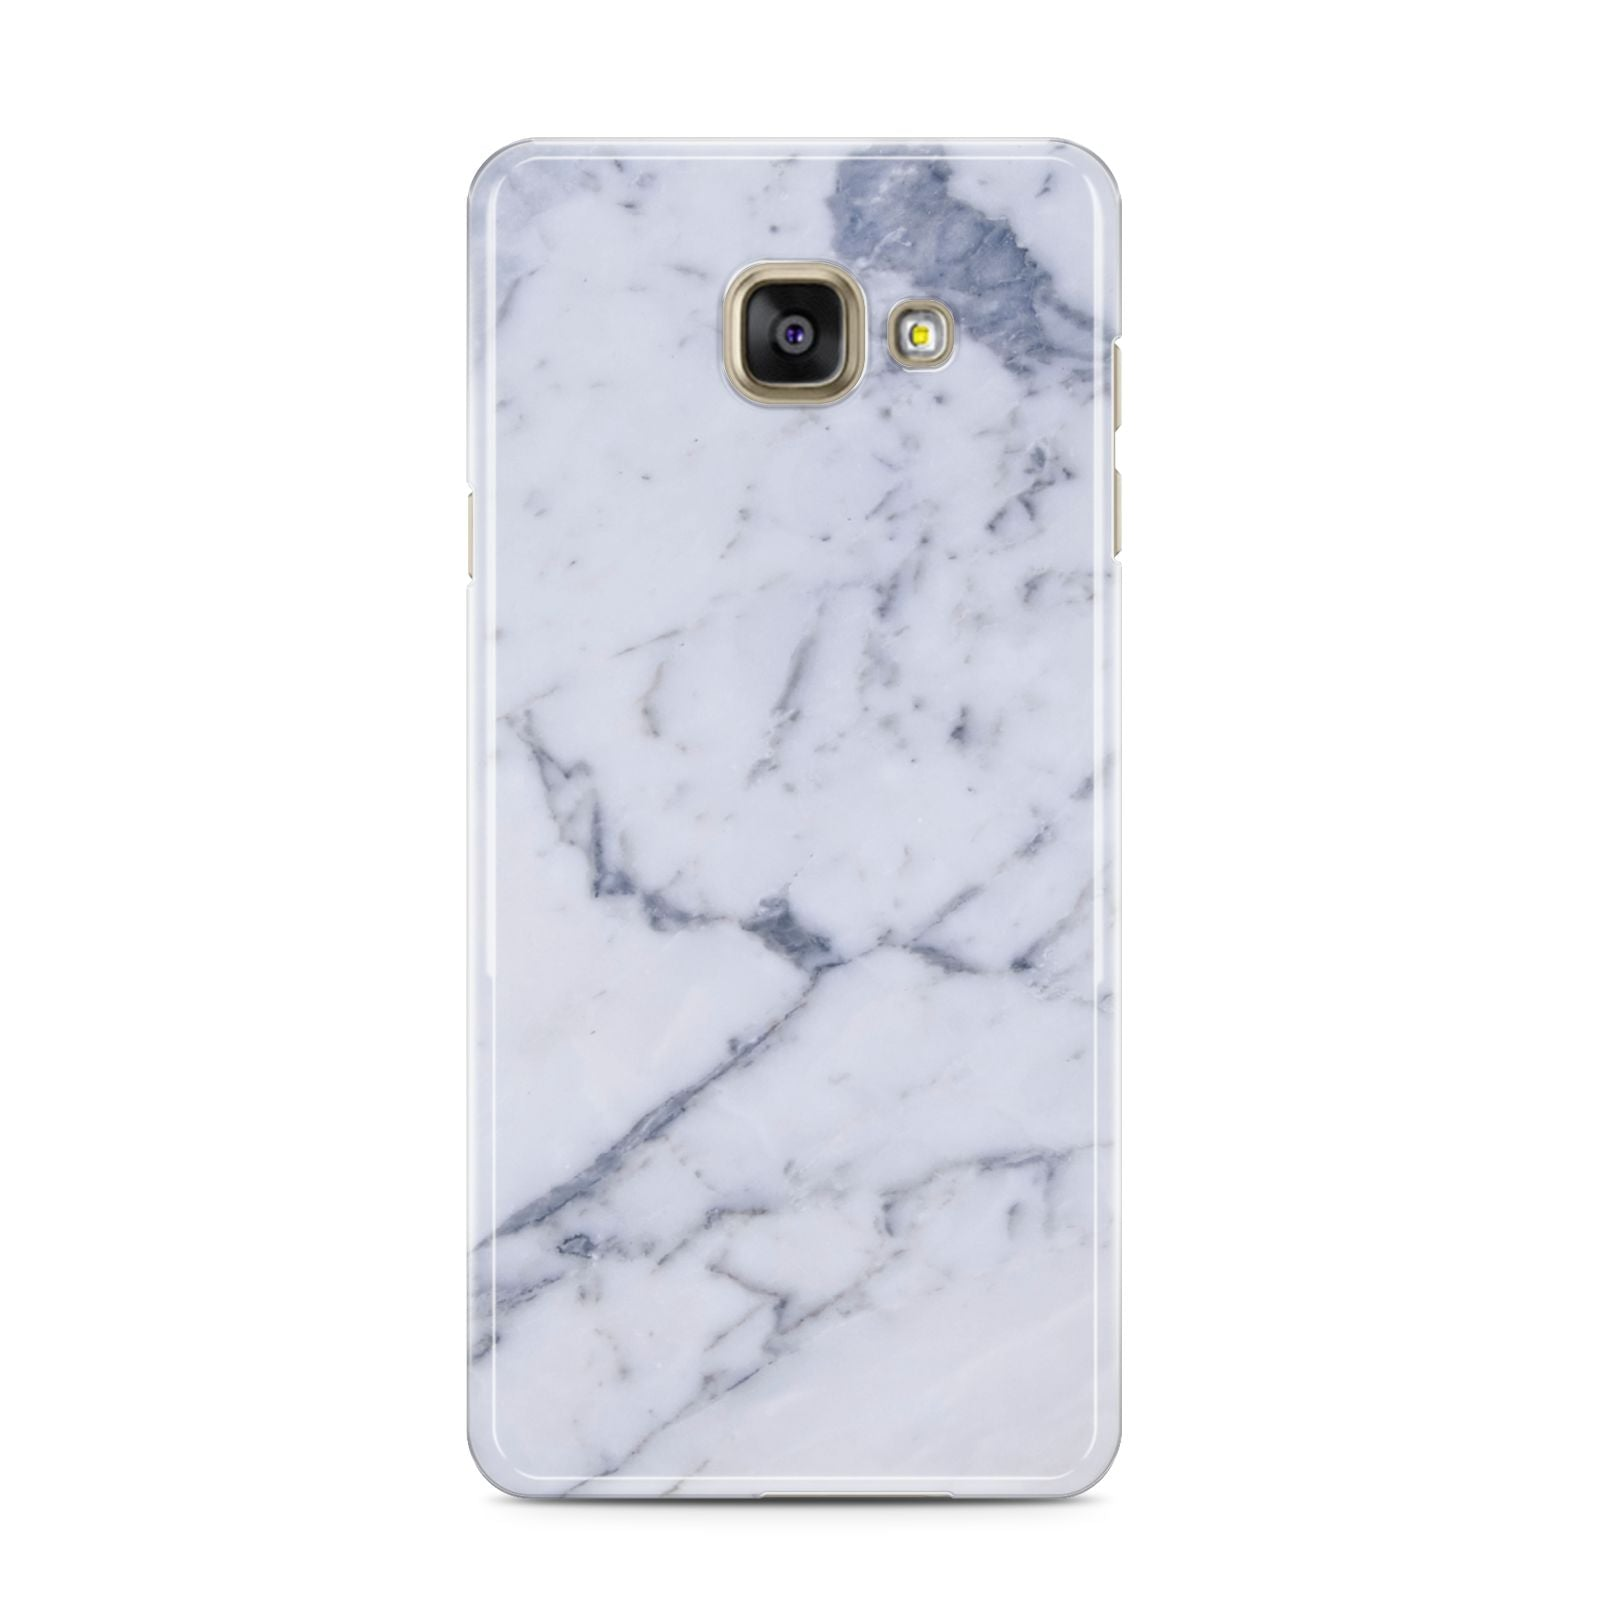 Faux Marble Grey White Samsung Galaxy A3 2016 Case on gold phone